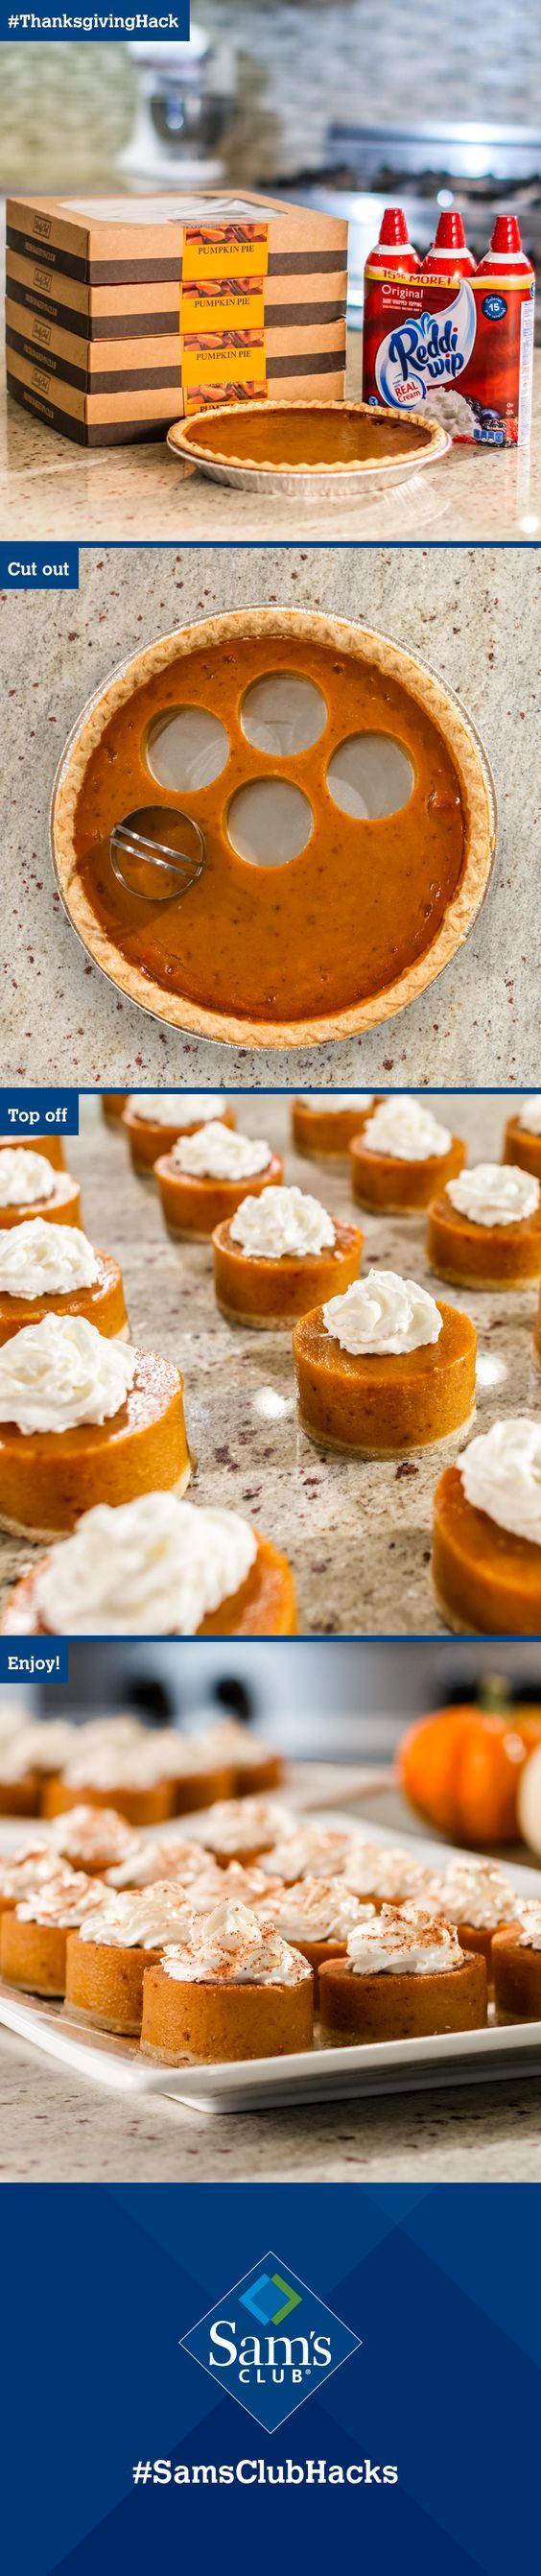 """Family will gobble up this easy #ThanksgivingHack! Take a 2"""" biscuit cutter to four Sam's Club pumpkin pies and voila! Adorable minis for 32 guests. Top off with Reddi-wip and SERVE IMMEDIATELY. Happy Thanksgiving! #SamsClubHacks:"""